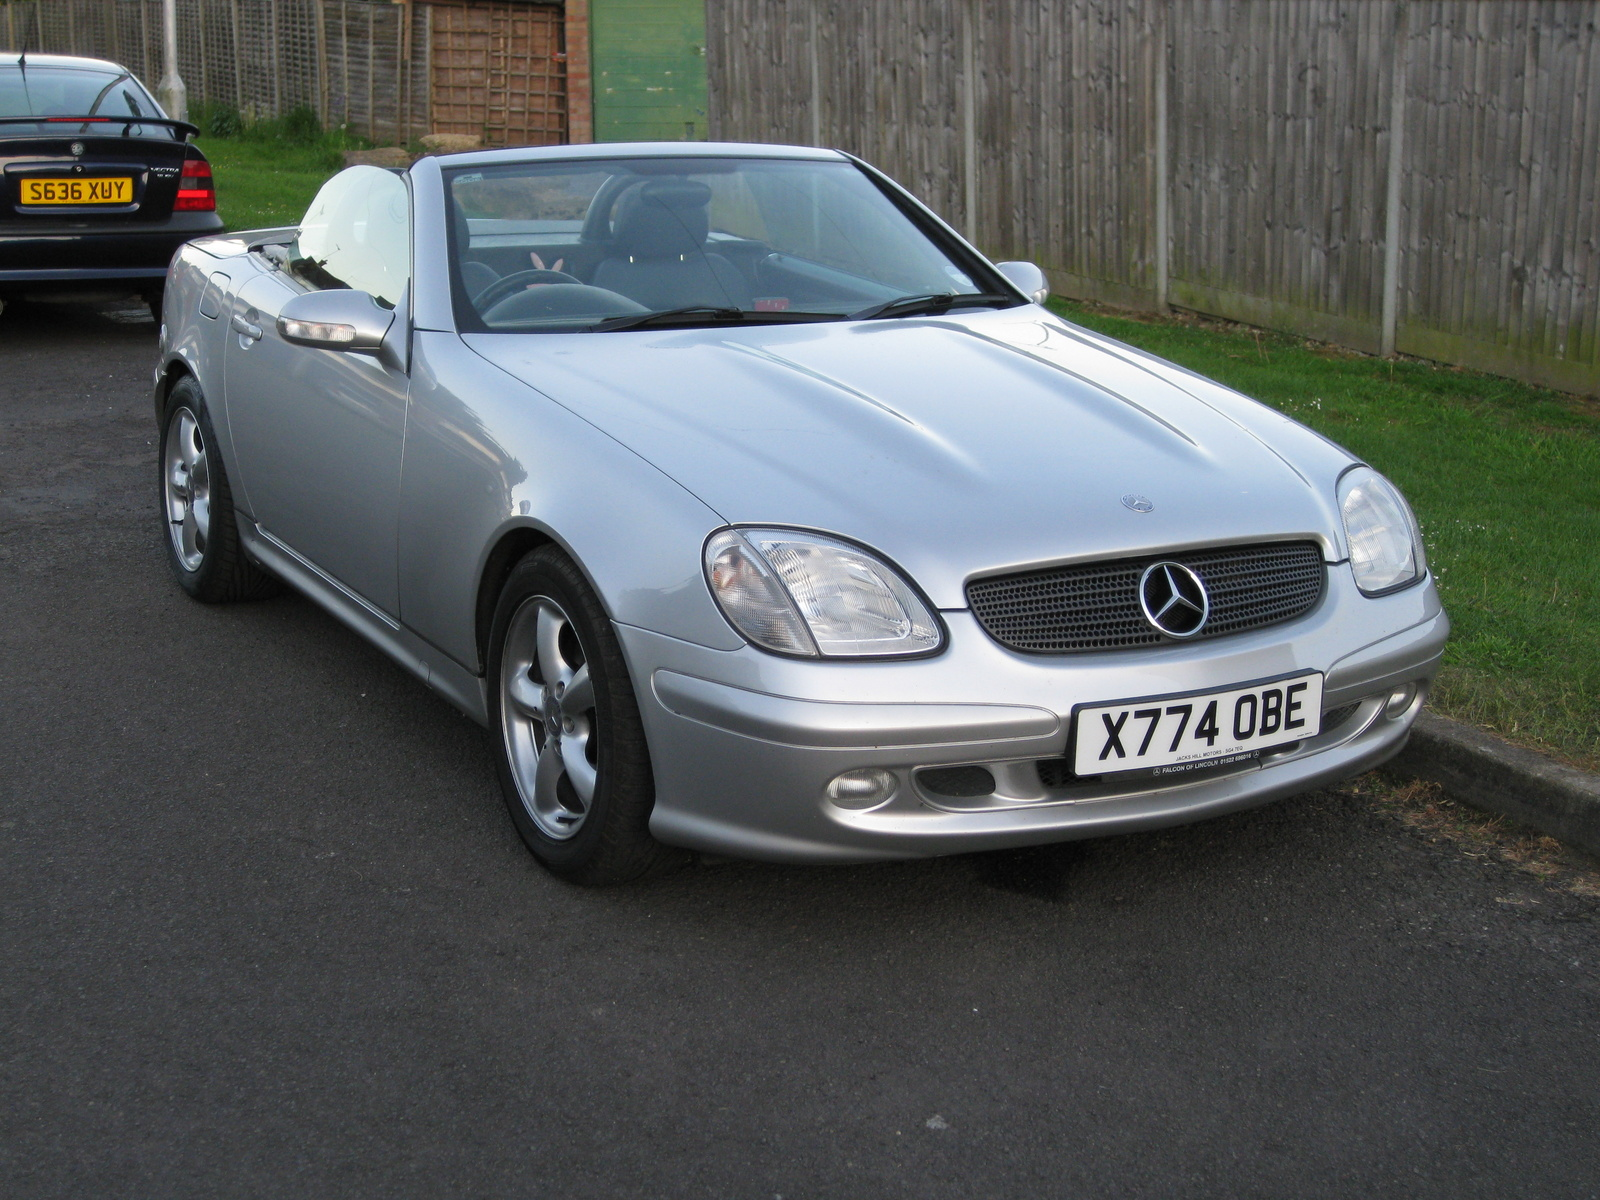 Picture of 2000 Mercedes-Benz SLK-Class